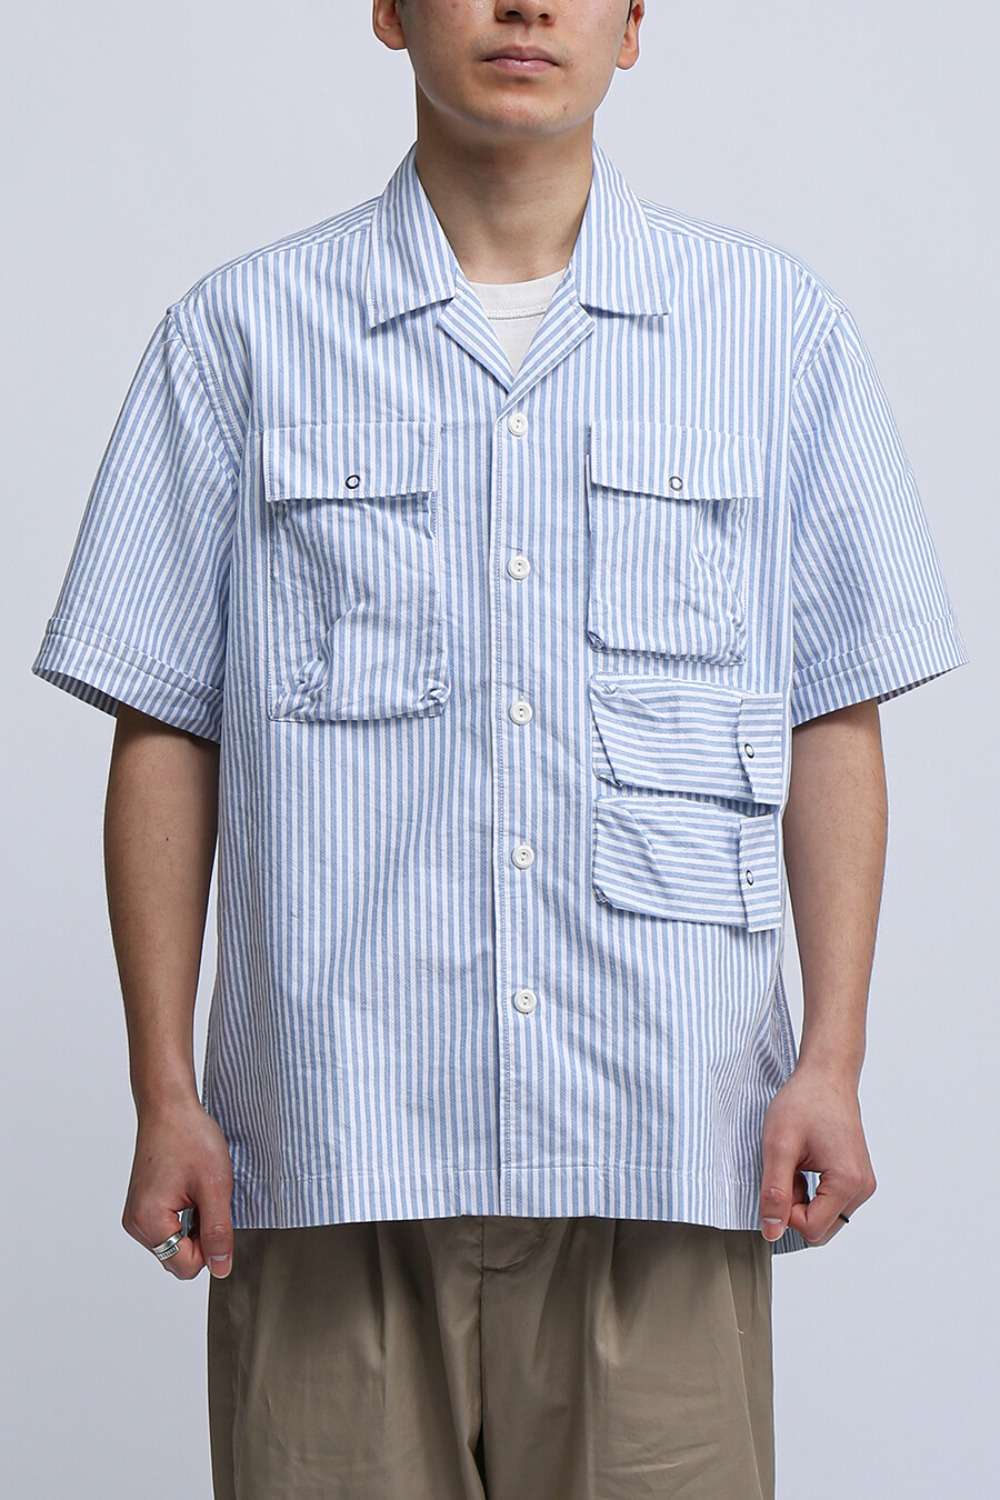 UTILITY FIELD HALF SHIRT BLUE STRIPE OXFORD